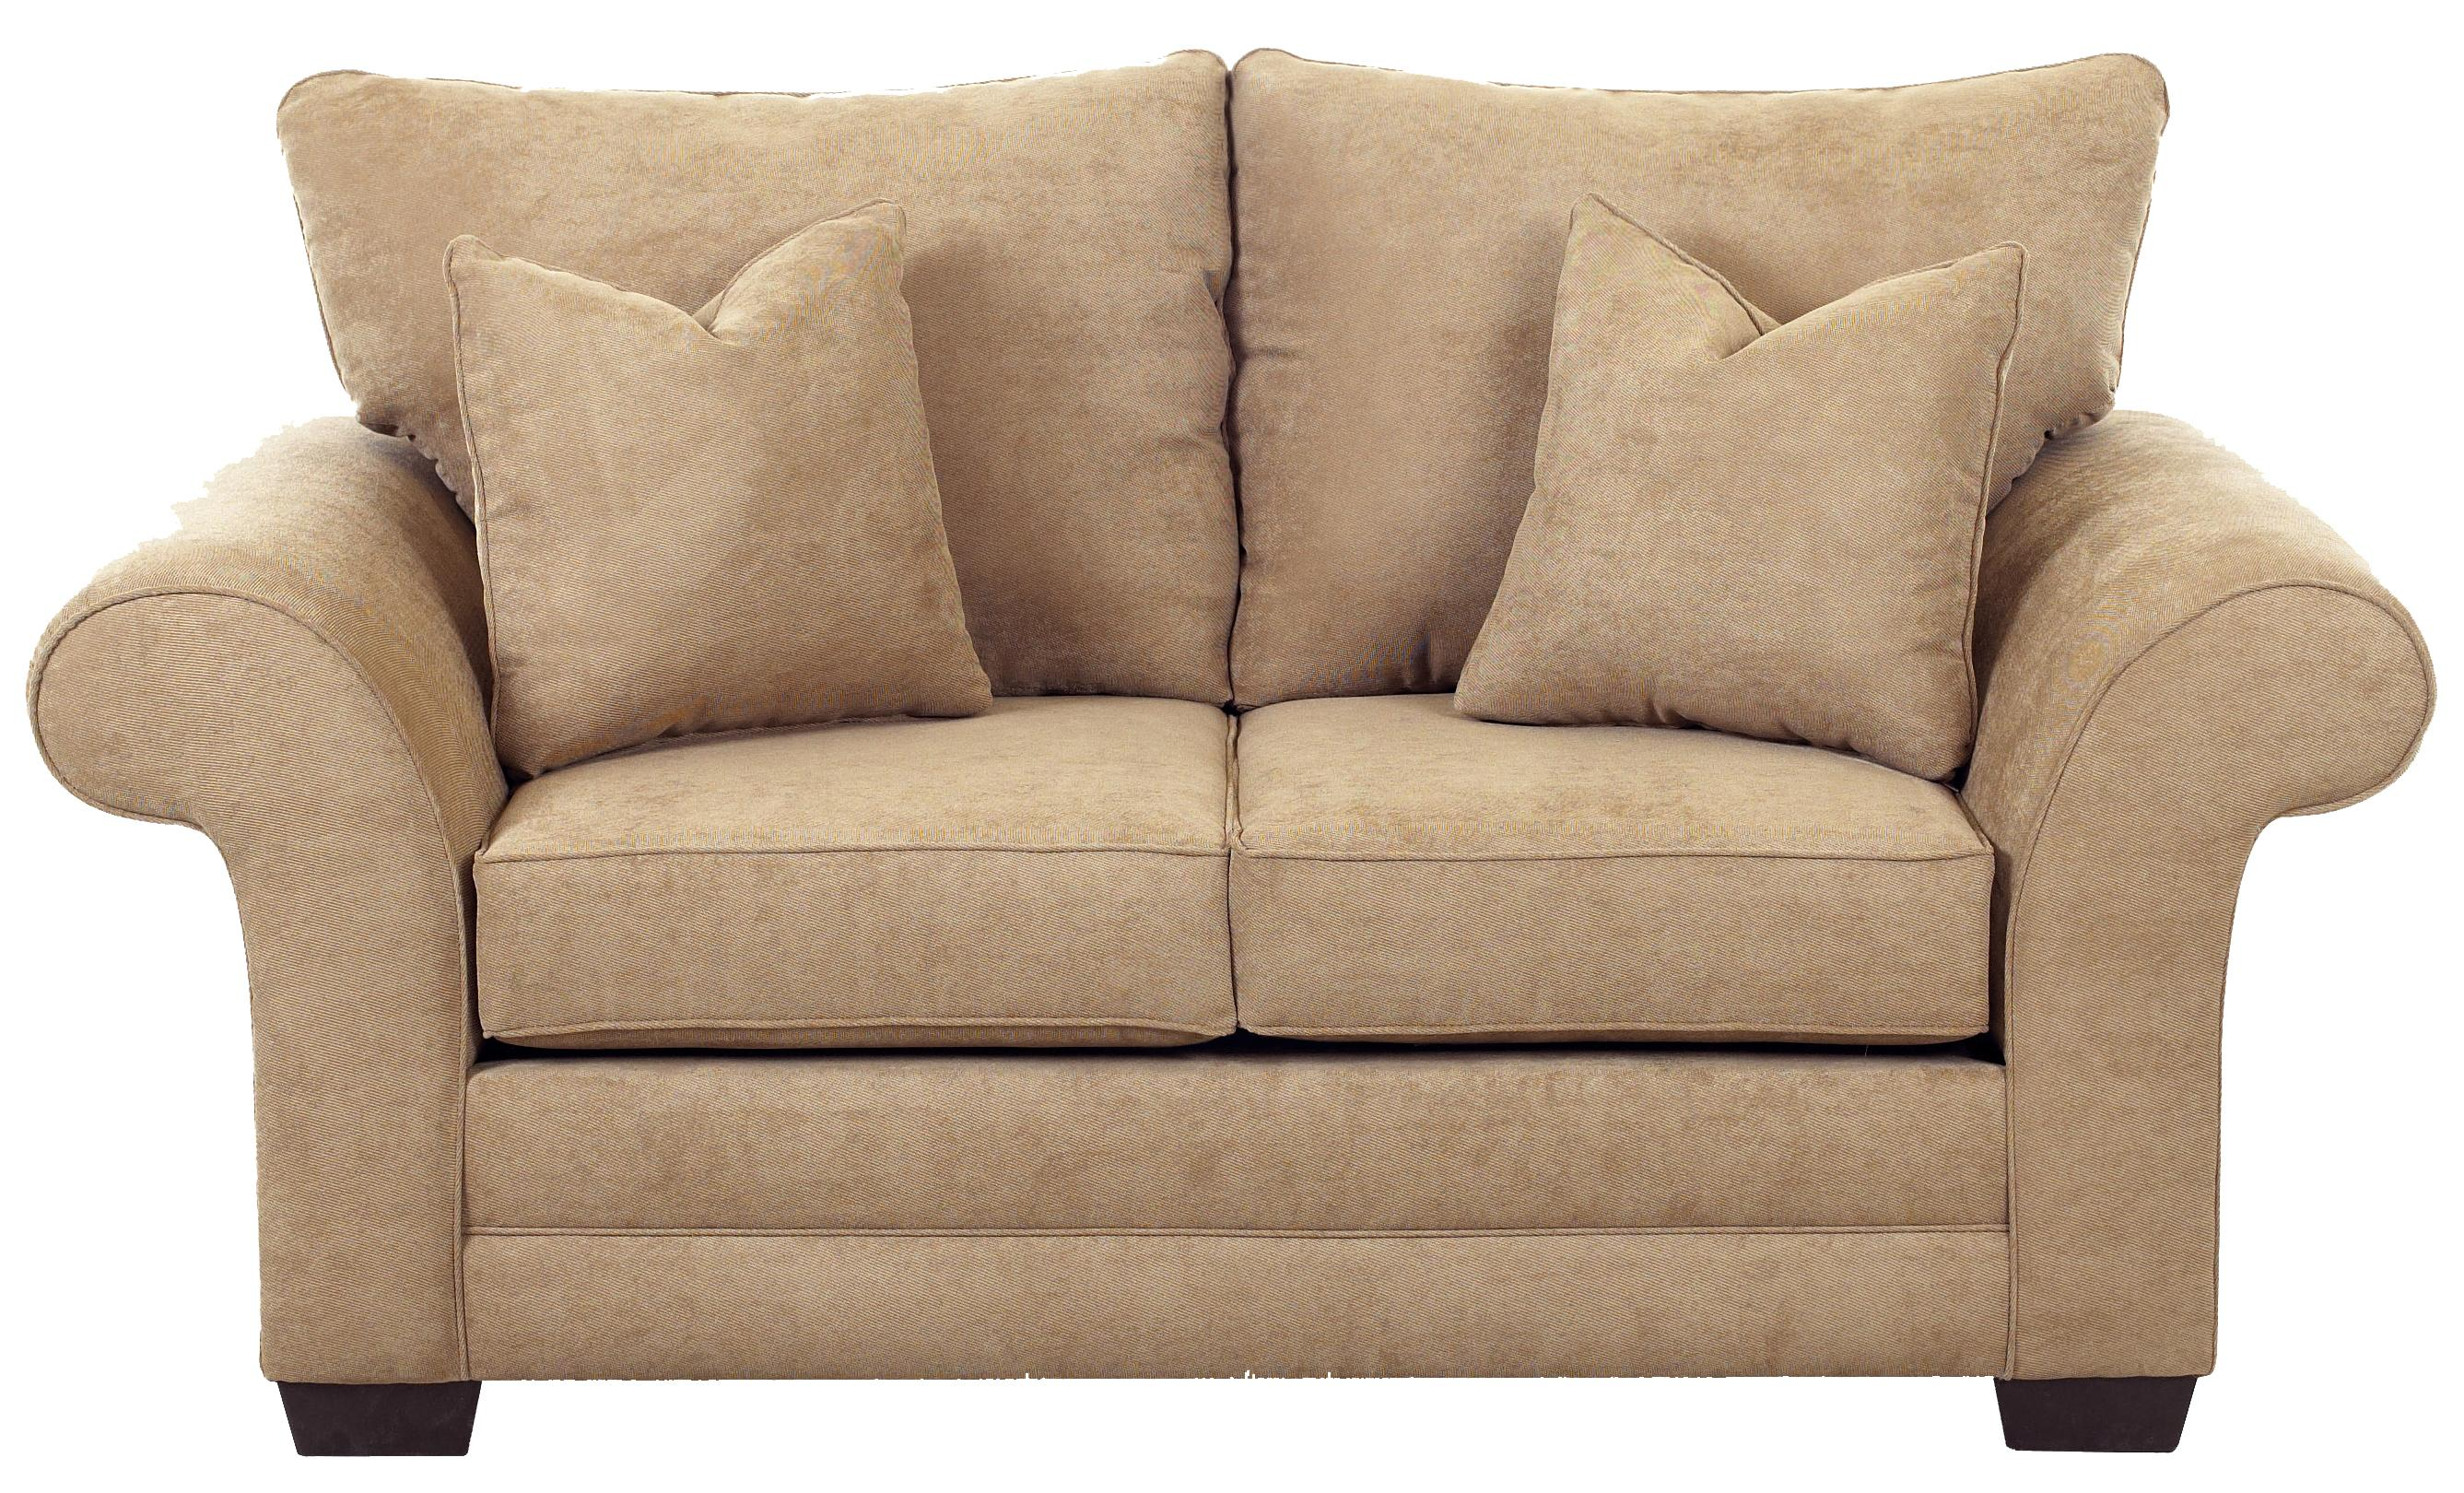 Klaussner Holly Loveseat - Item Number: E76900LS